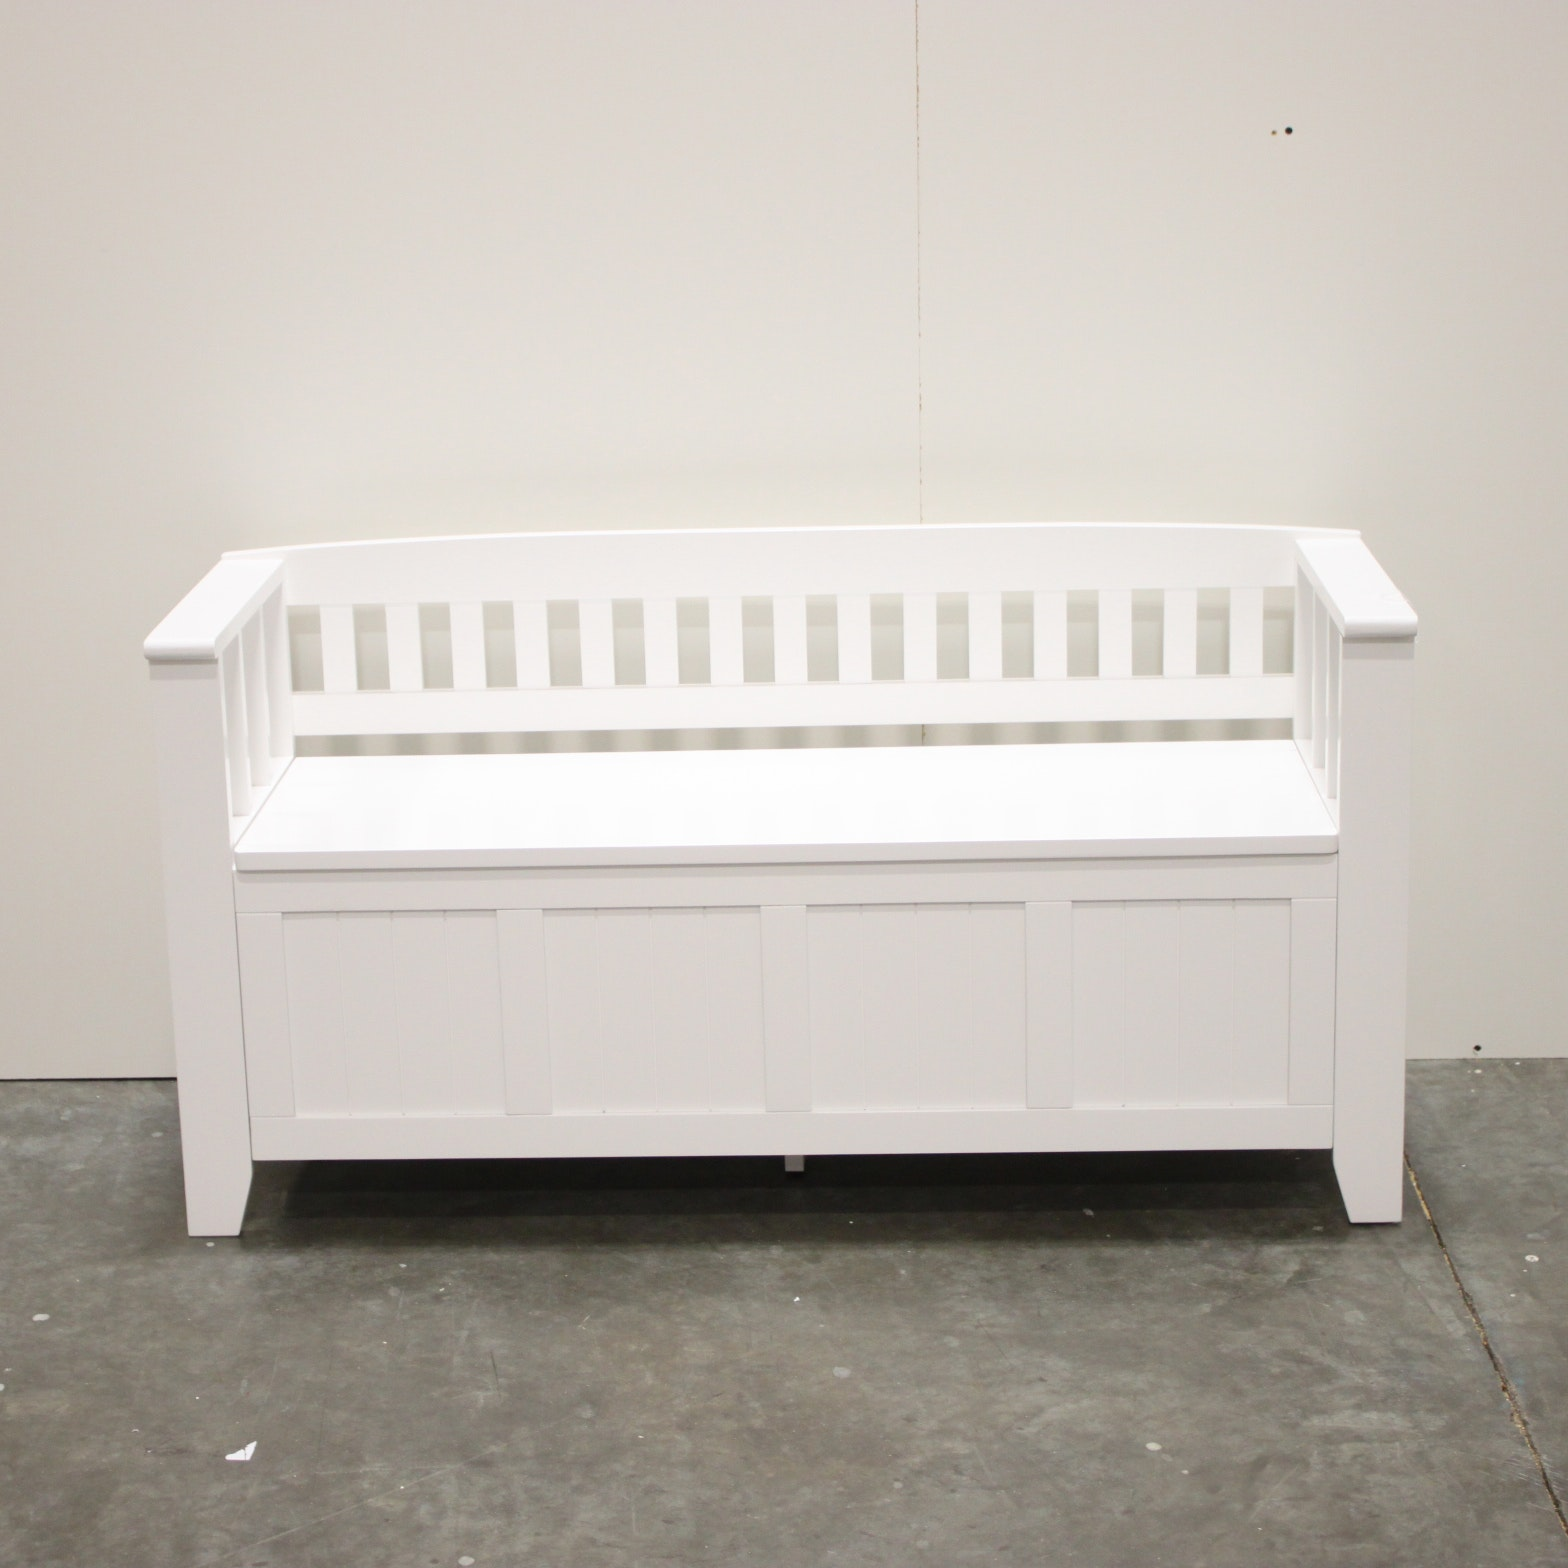 Cottage Style White Bench with Storage